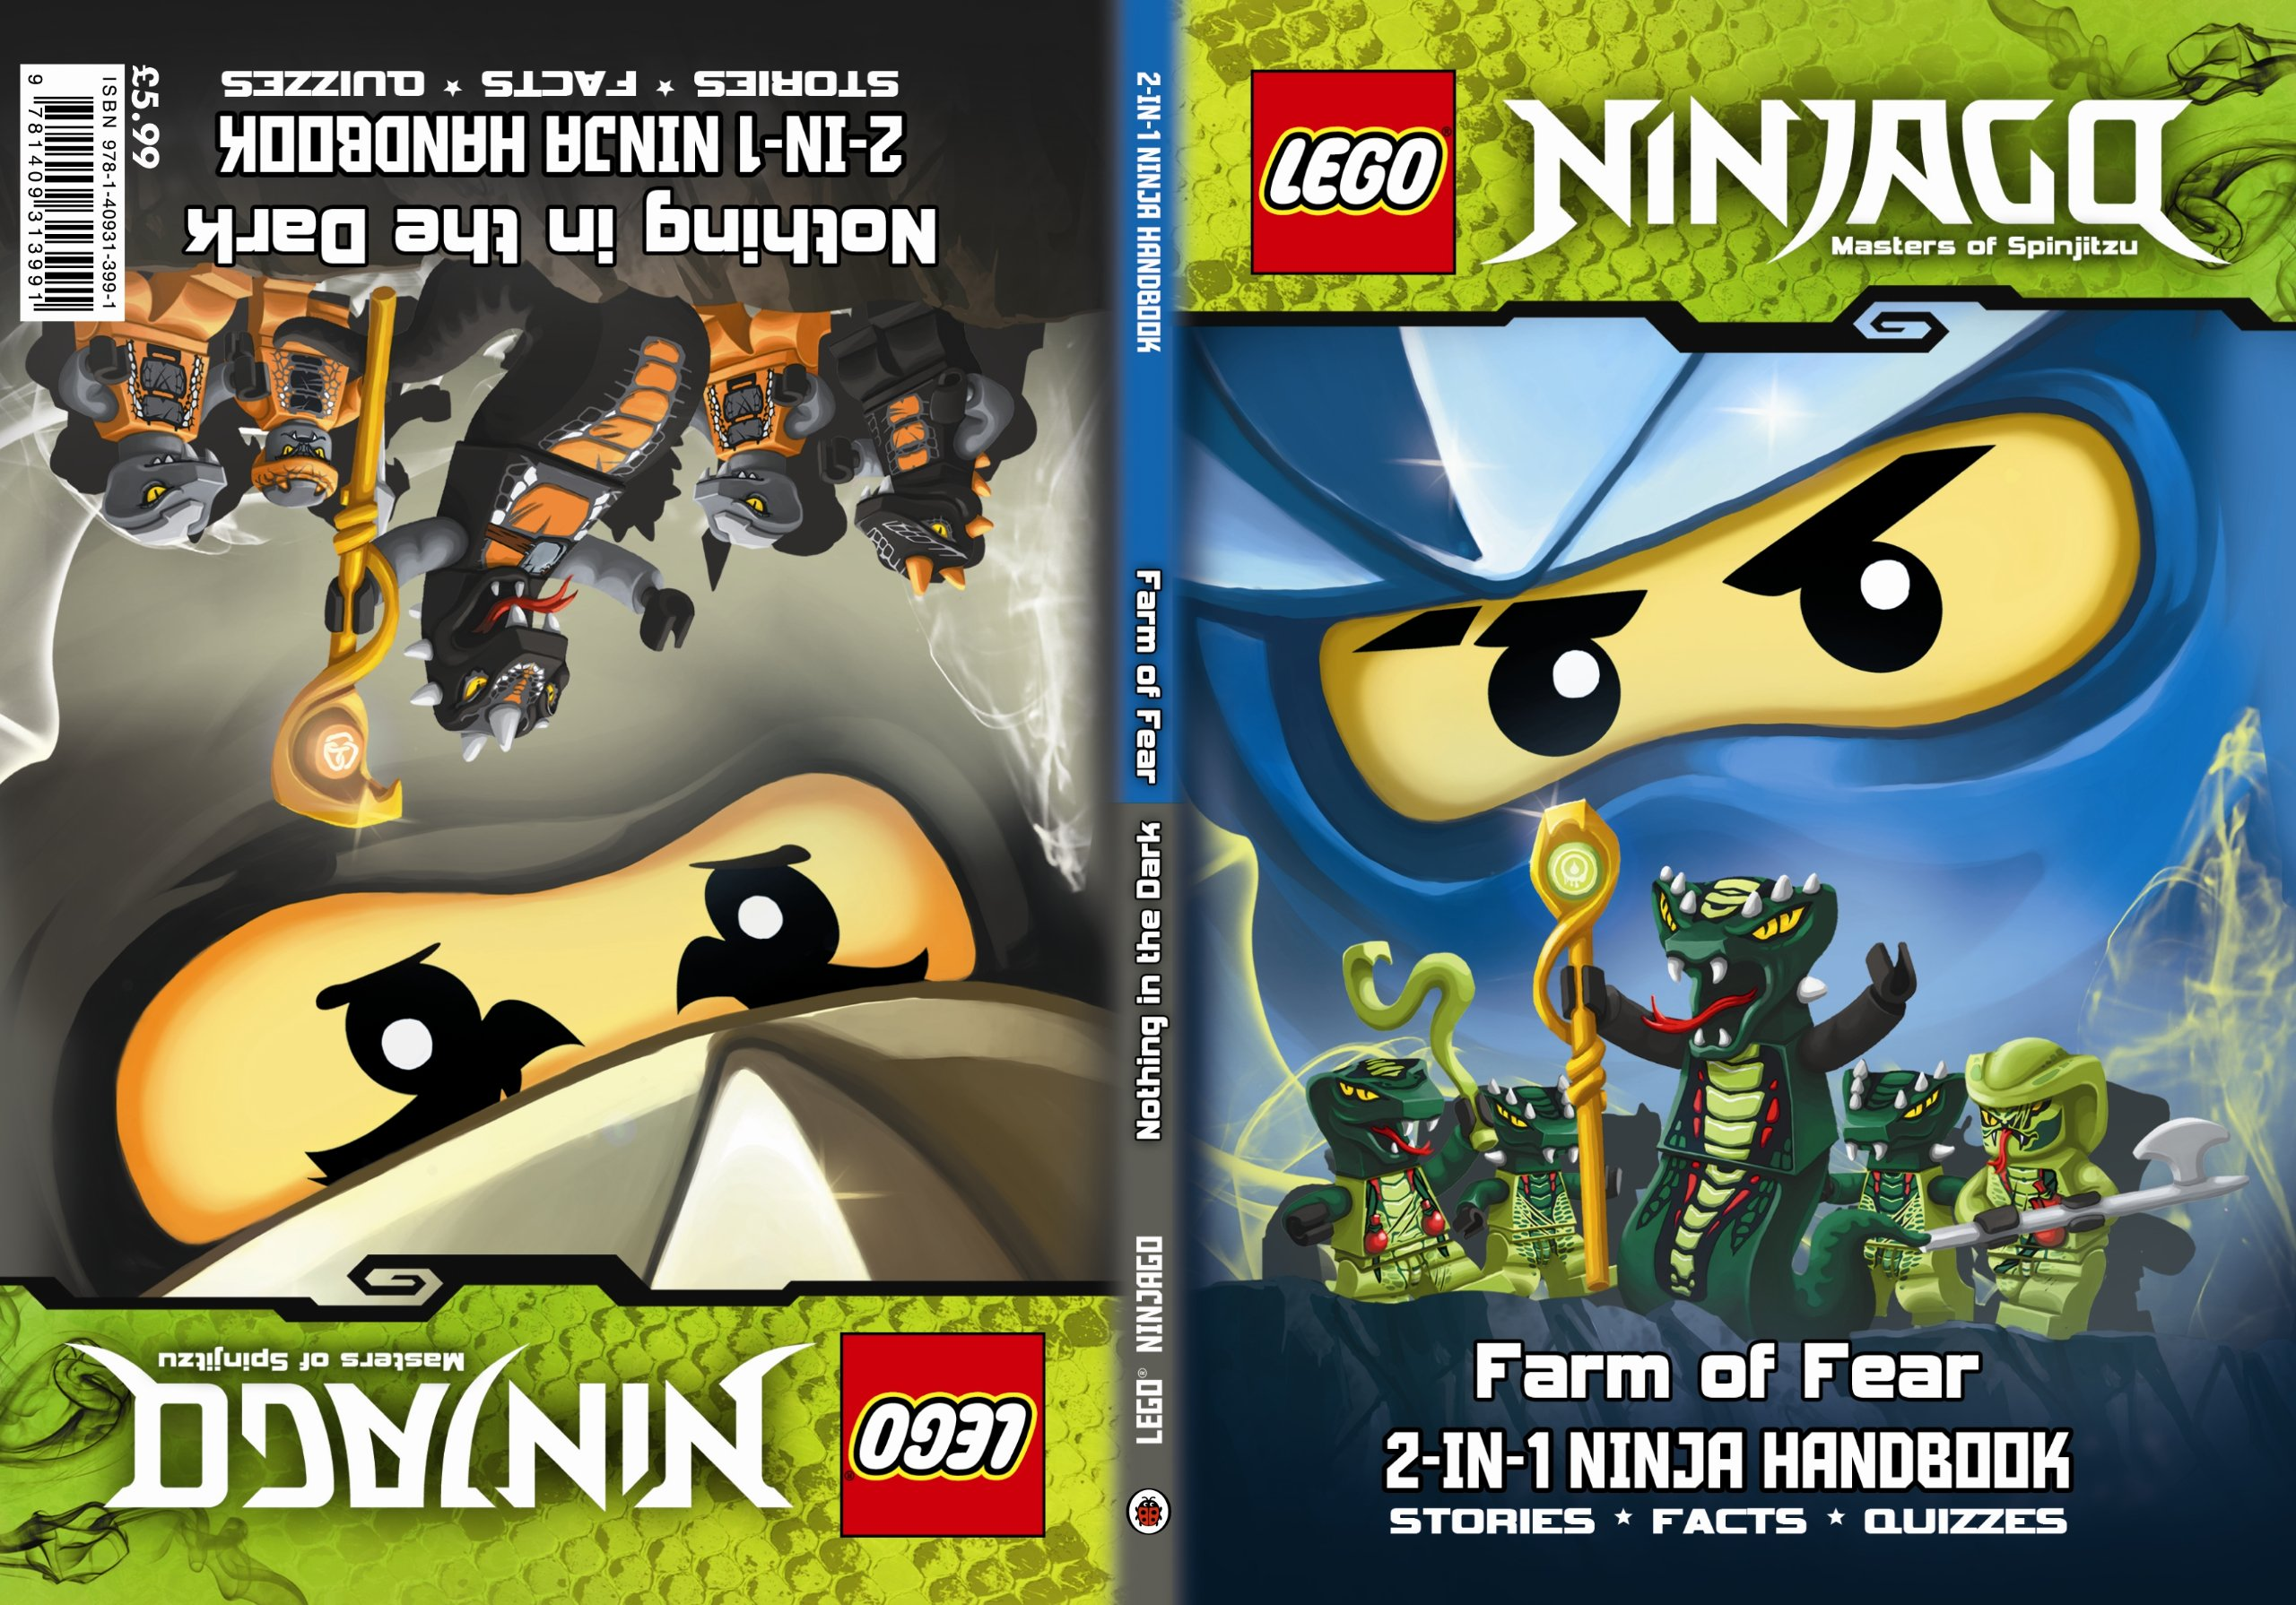 LEGO Ninjago 2-in-1 Ninja Handbook: Nothing in the Dark/Farm ...